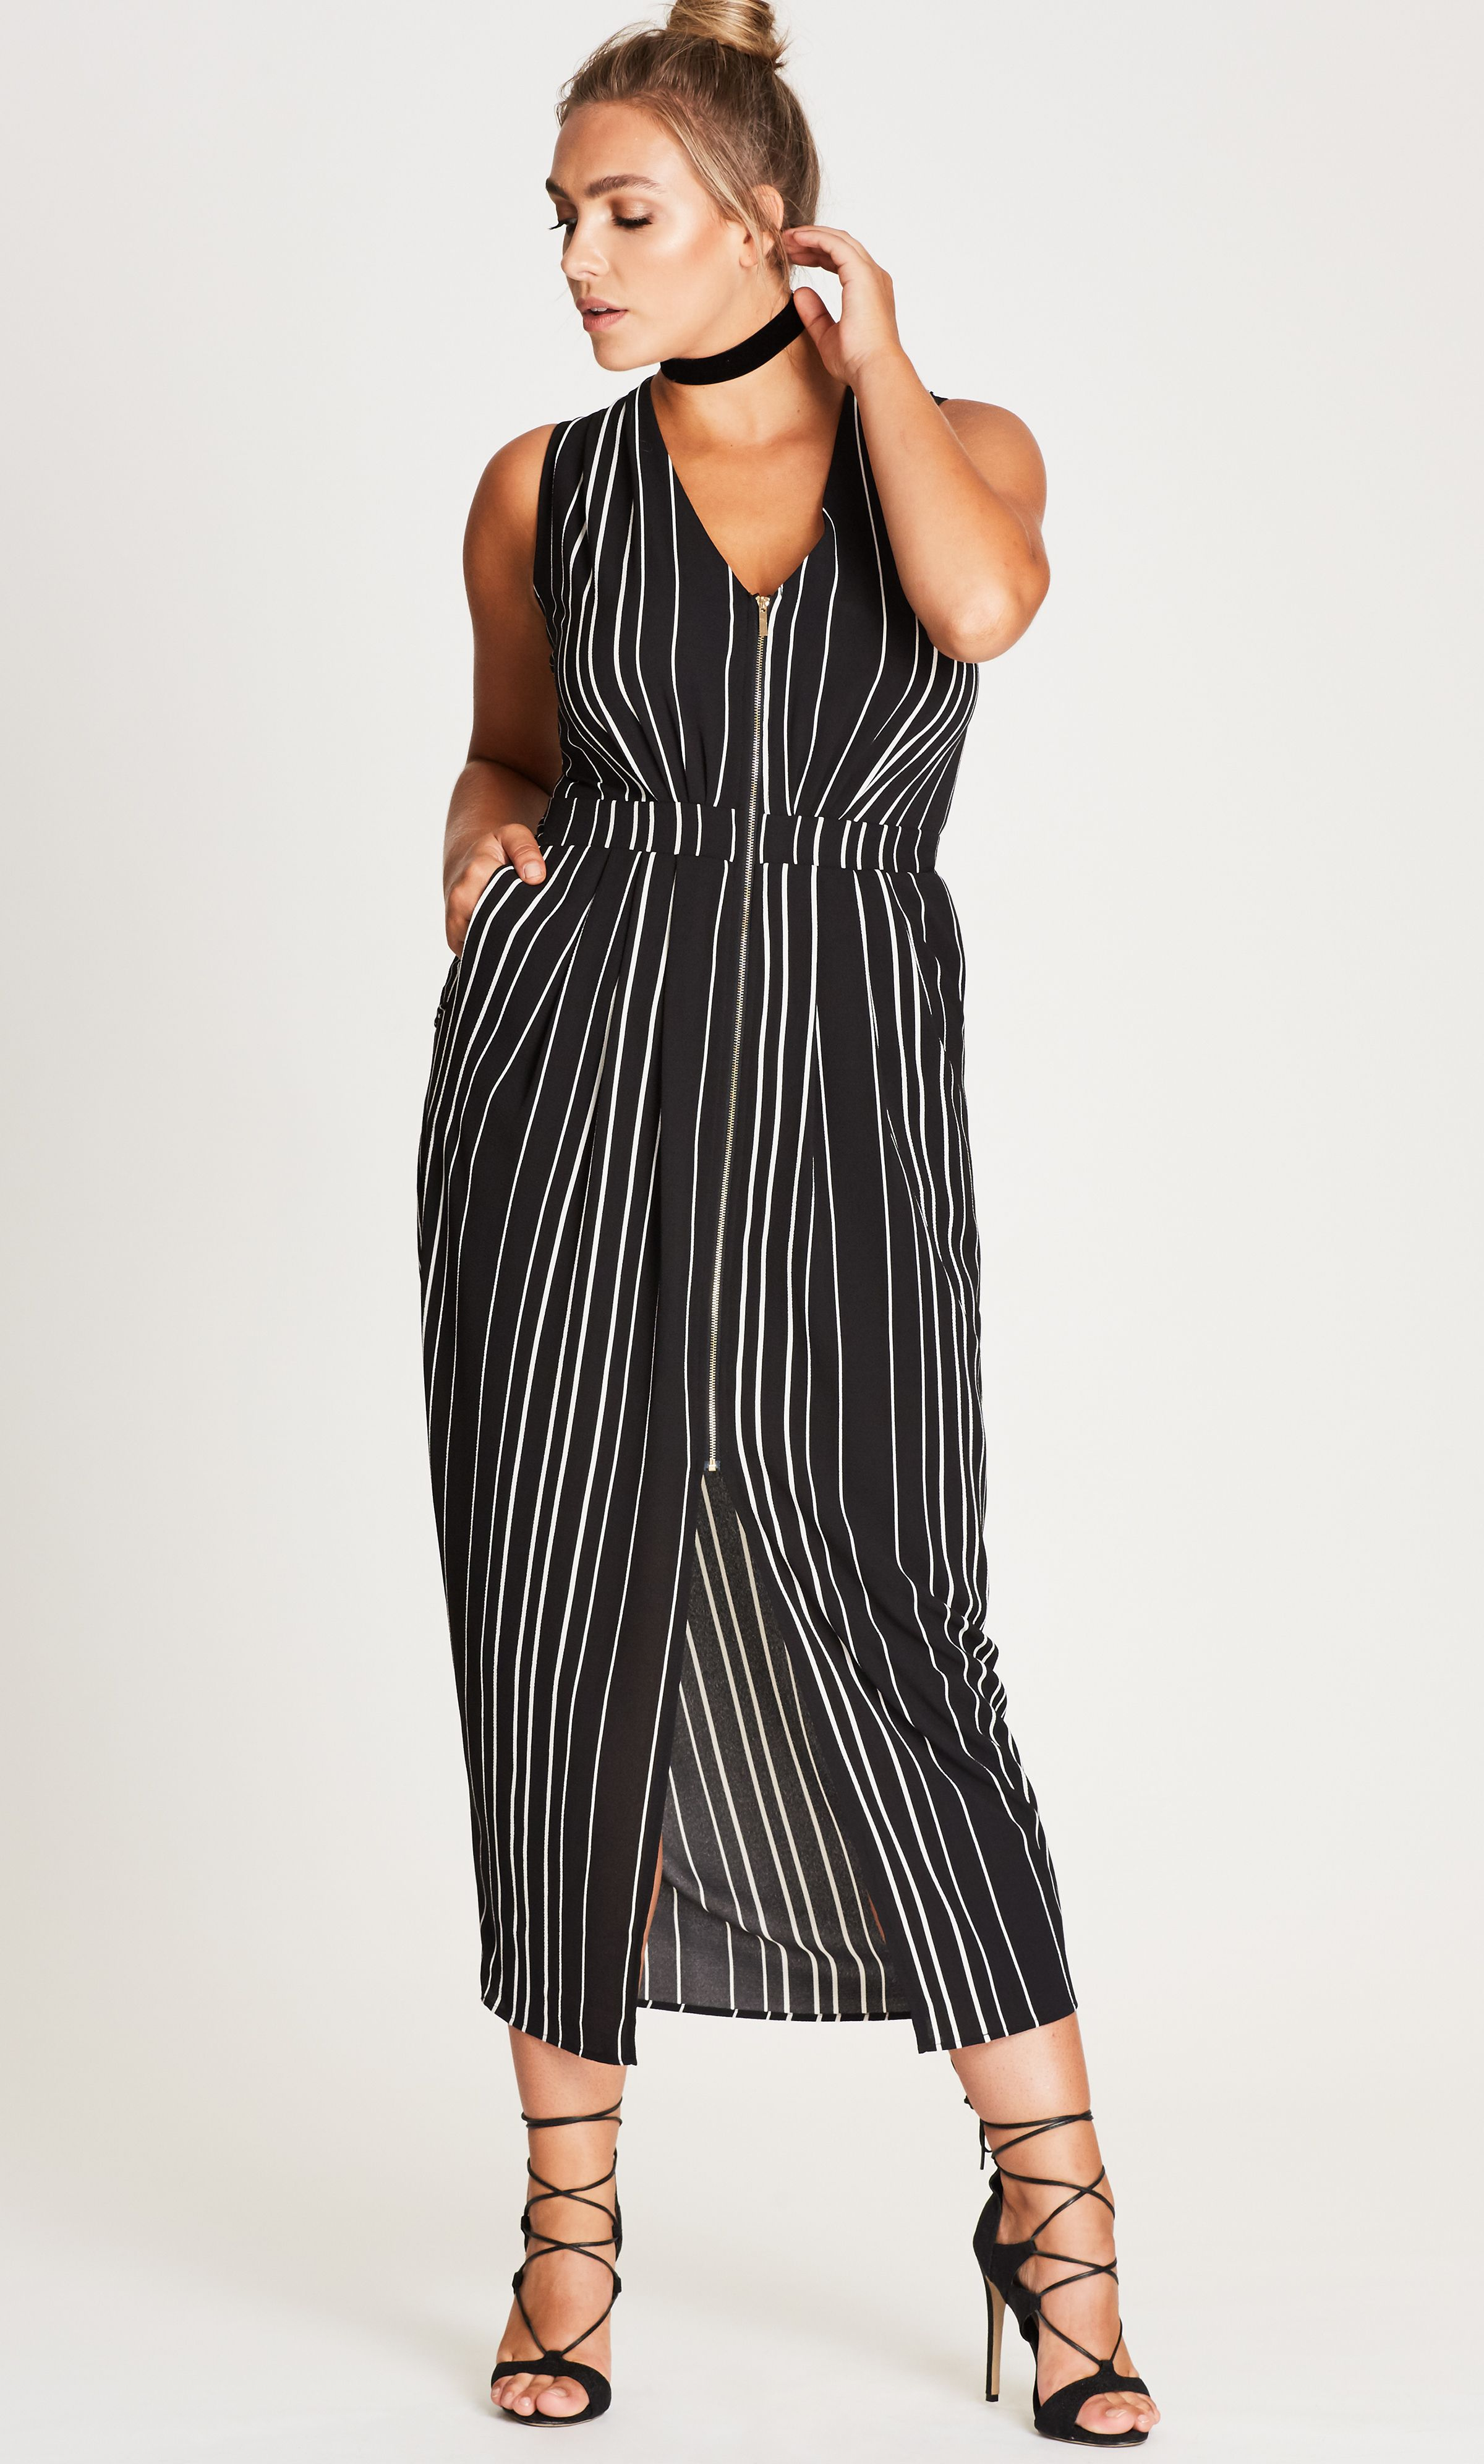 Style By Trend: Sports One City Chic - PLEATED ZIP FRONT DRESS ...